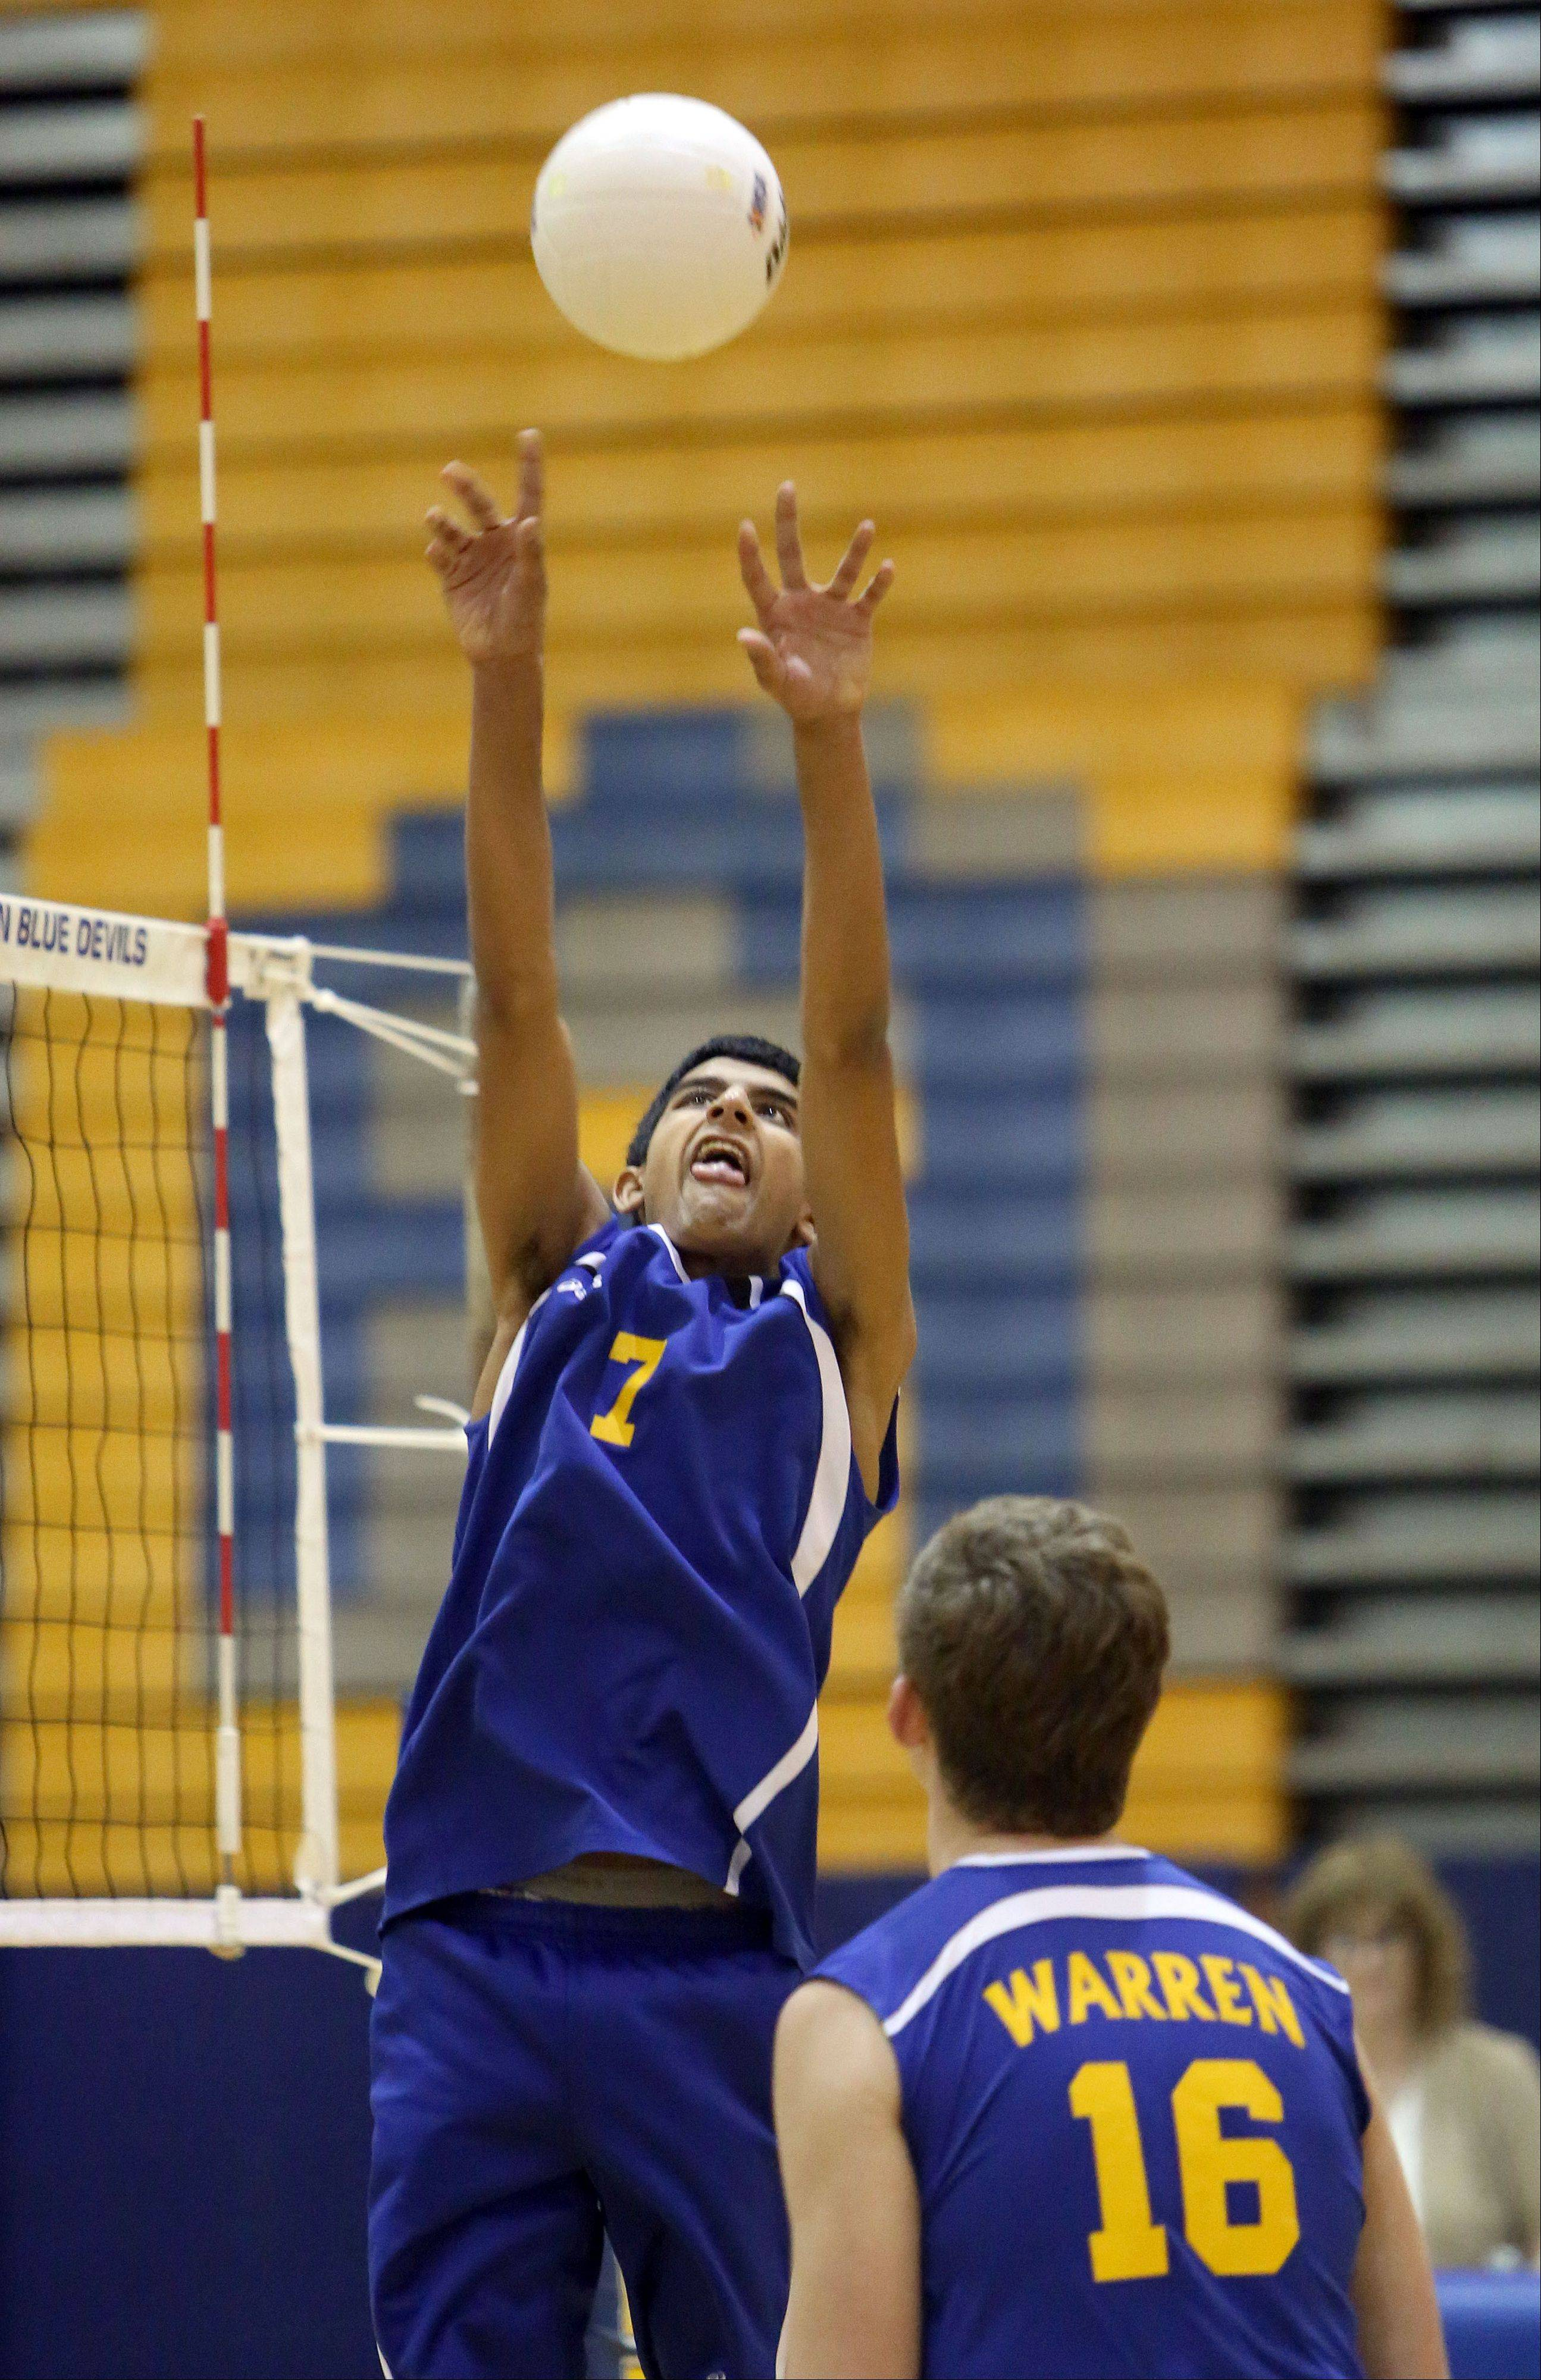 Warren's Arvind Kouta sets the ball to teammate Mitch Maan de Kok during regional semifinal play against Carmel on Tuesday night at Warren.